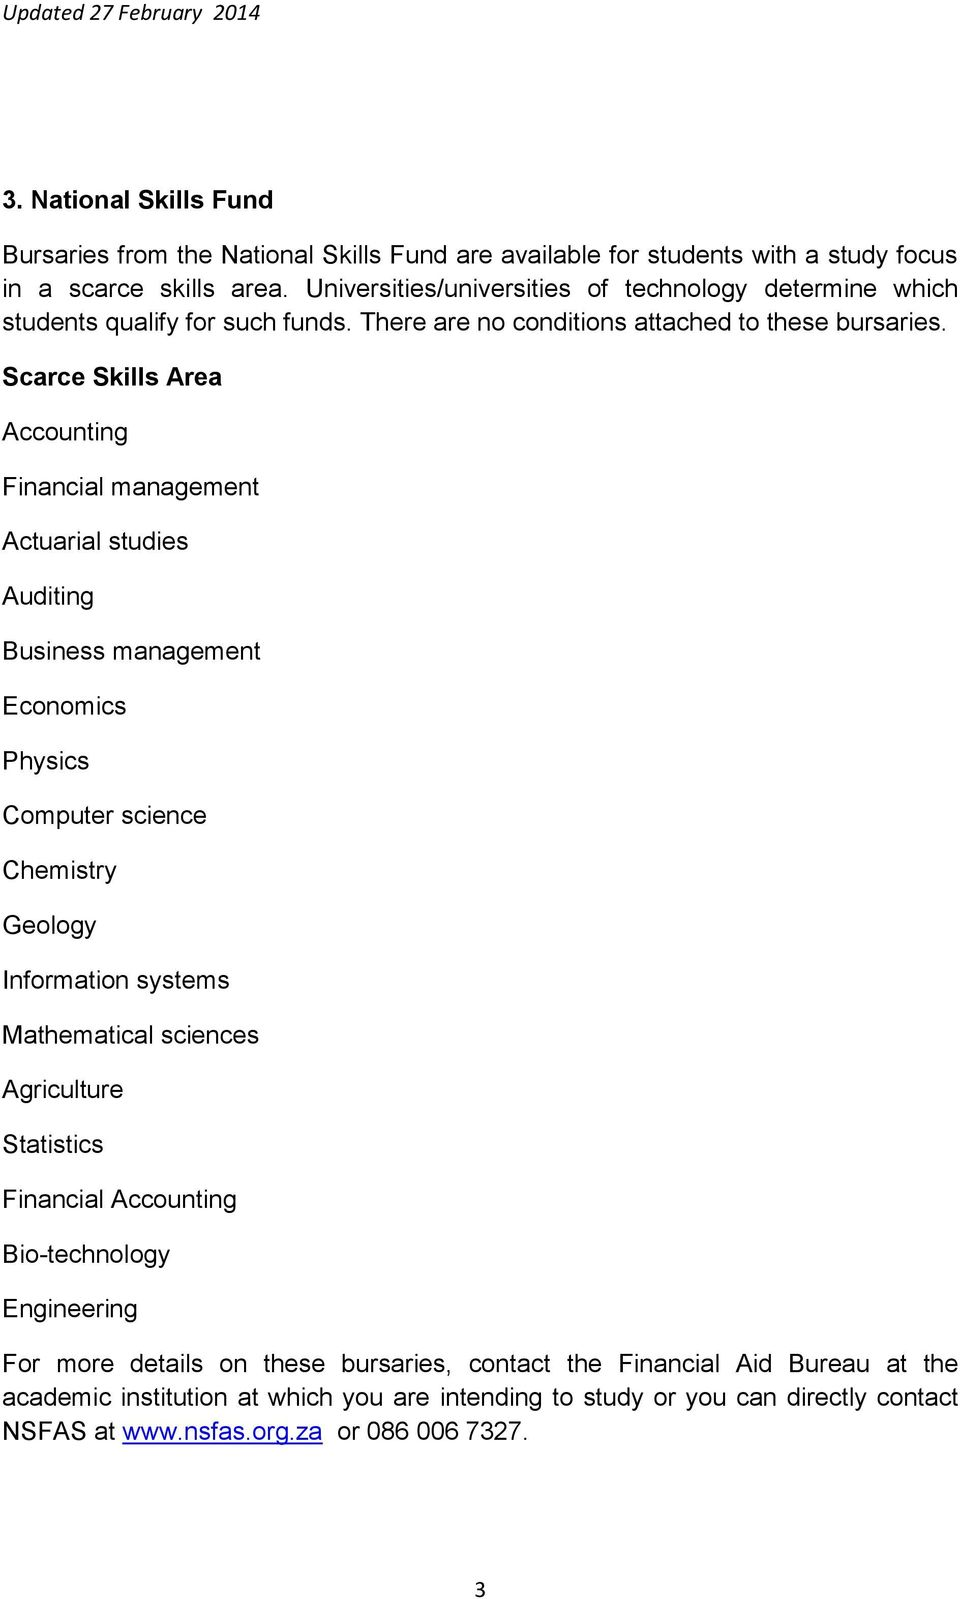 Scarce Skills Area Accounting Financial management Actuarial studies Auditing Business management Economics Physics Computer science Chemistry Geology Information systems Mathematical